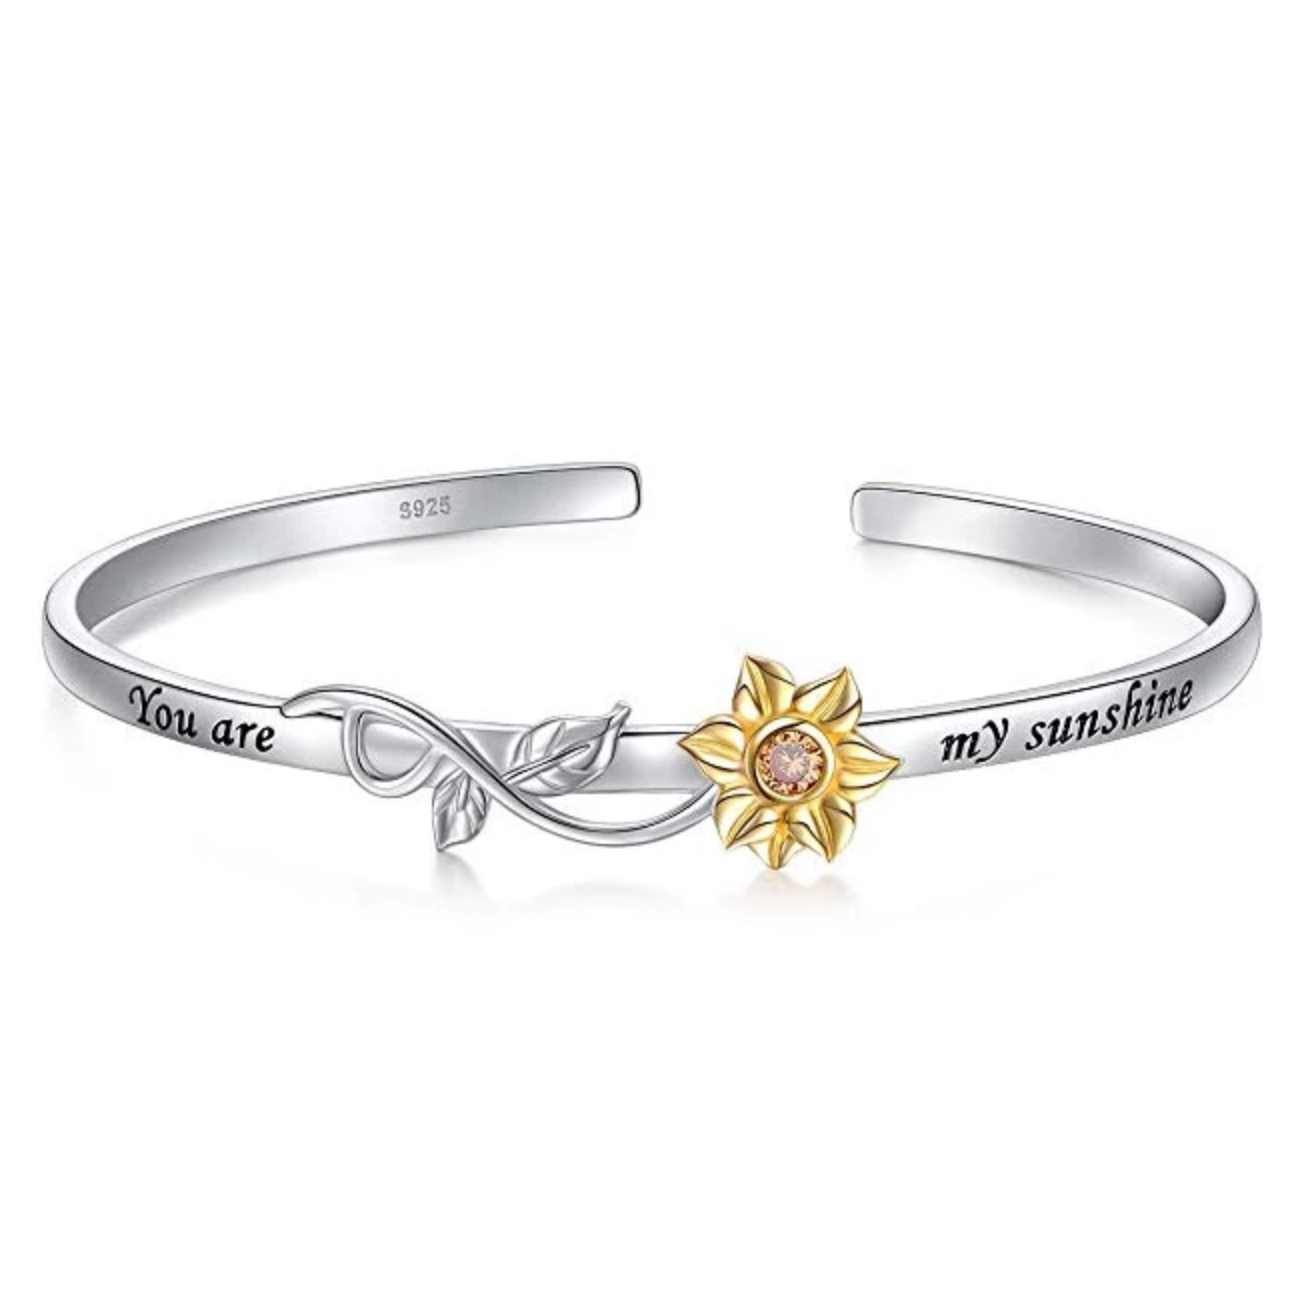 You Are My Sunshine Sunflower Bangle Bracelet Jewelry Accessories - Wonder Hippie Official